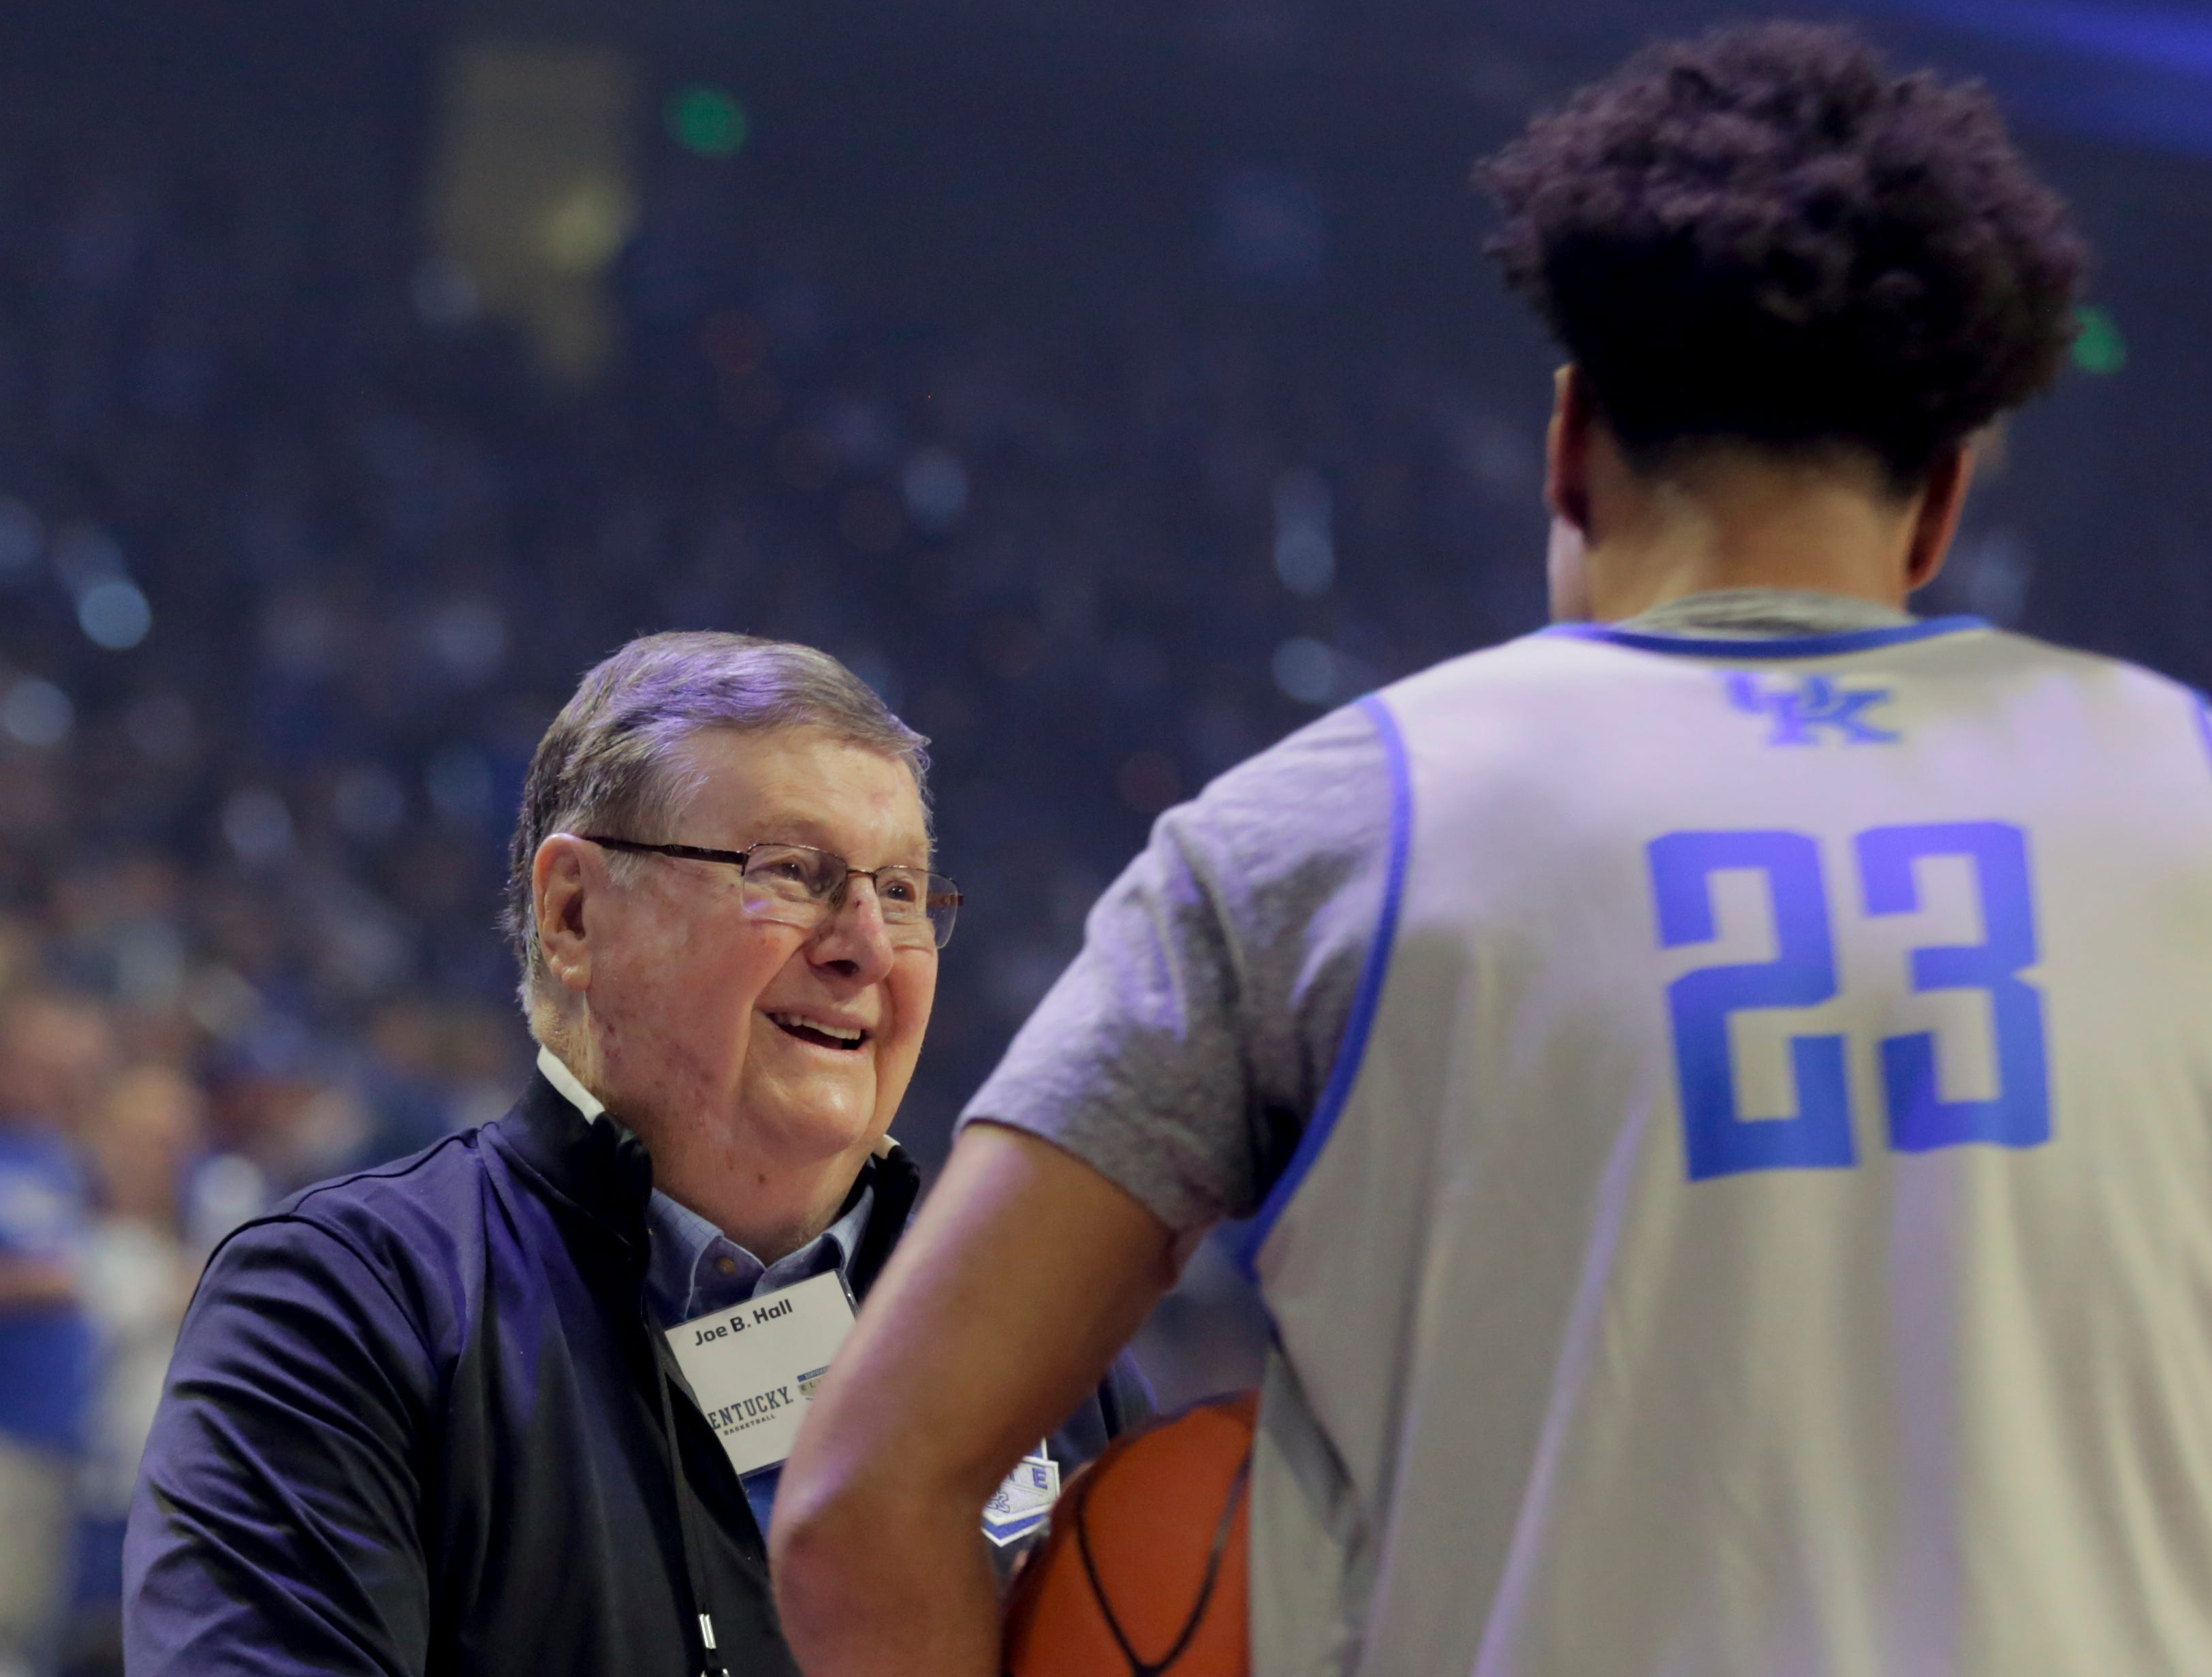 Kentucky legend Joe B. Hall shakes hands with current player EJ Montgomery during Big Blue Madness in Lexington, Kentucky.